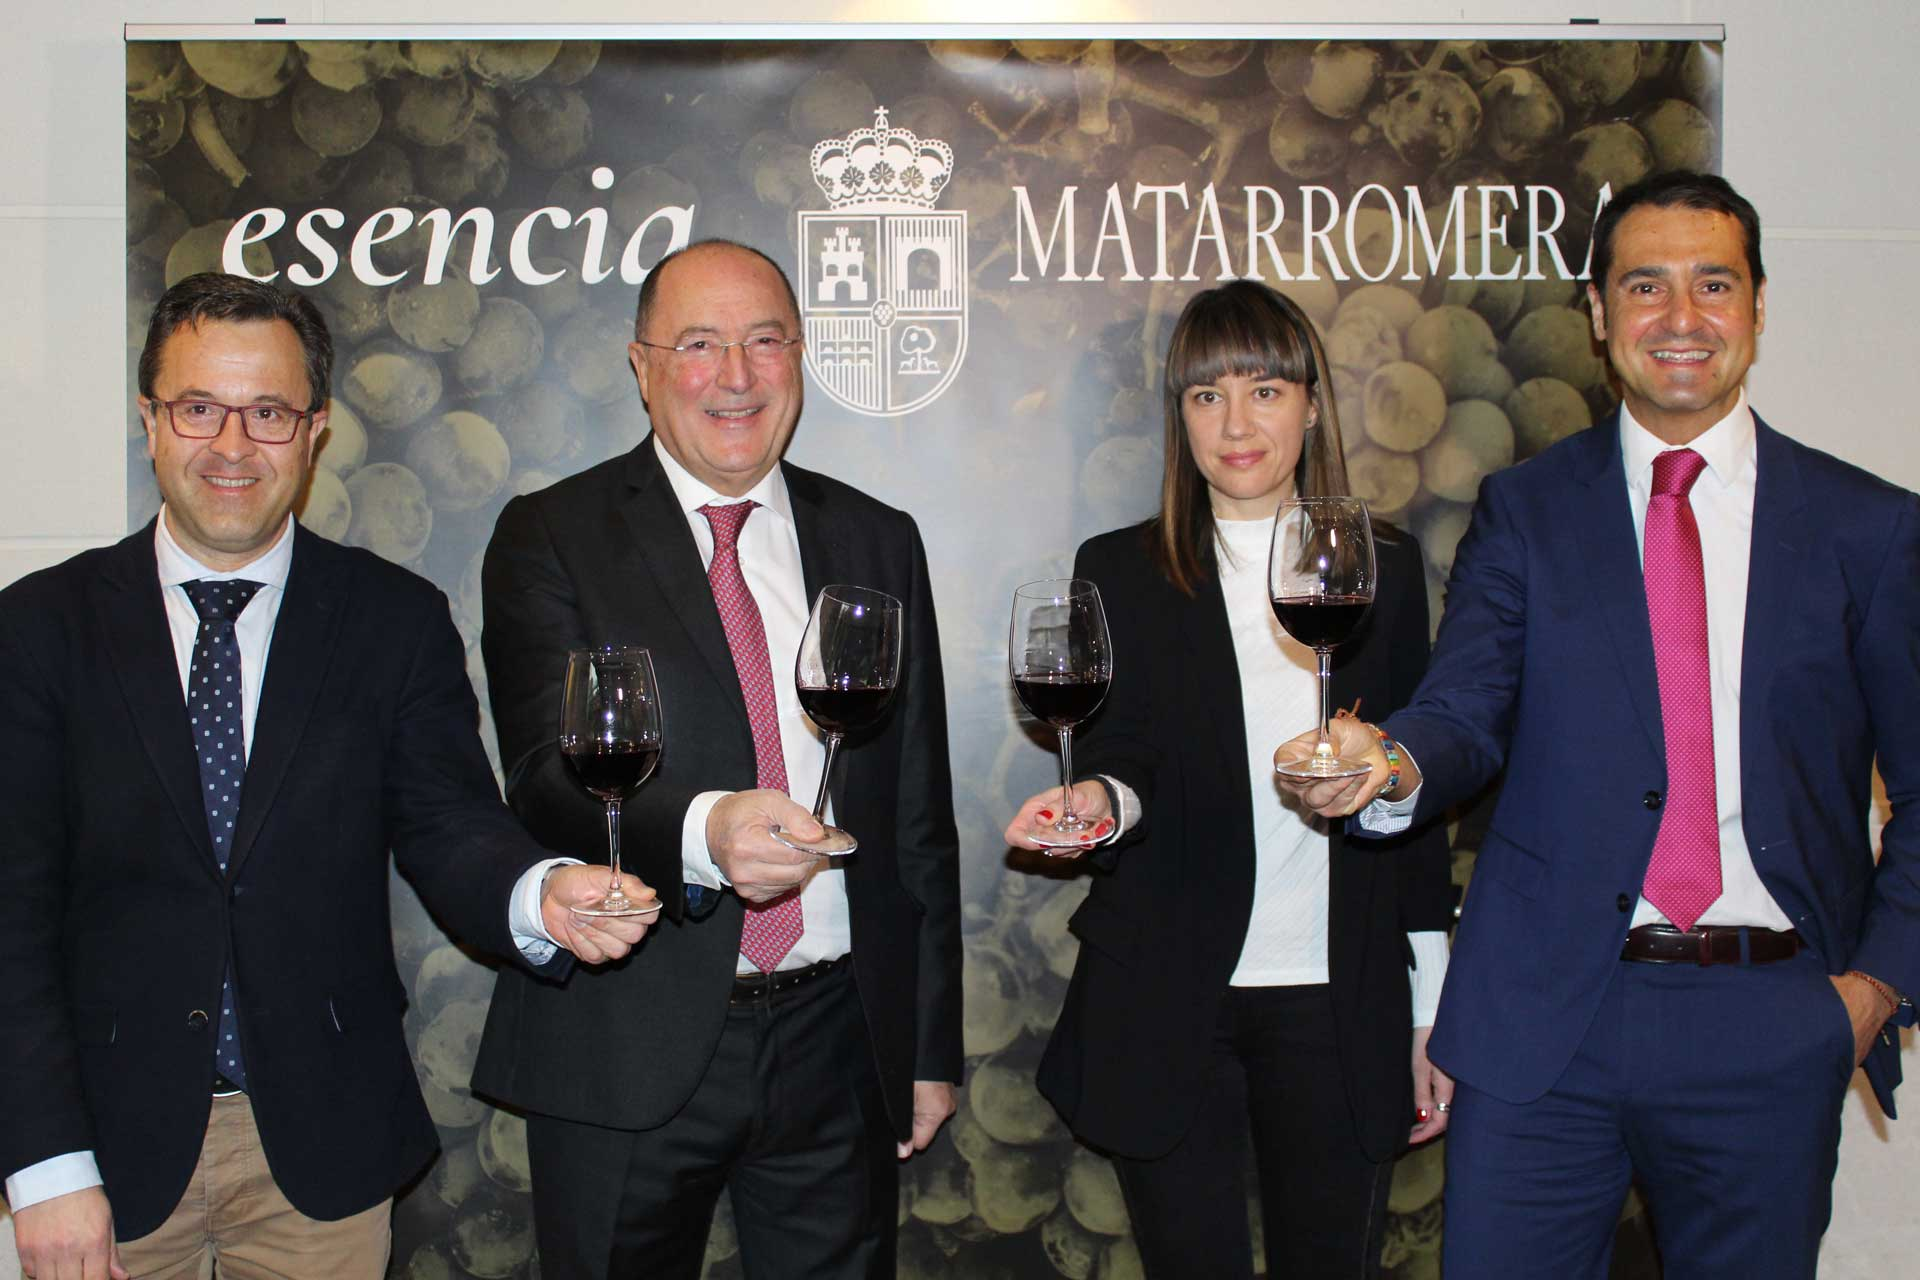 Matarromera presents ideas for its winery of the future, while keeping the essence of its past